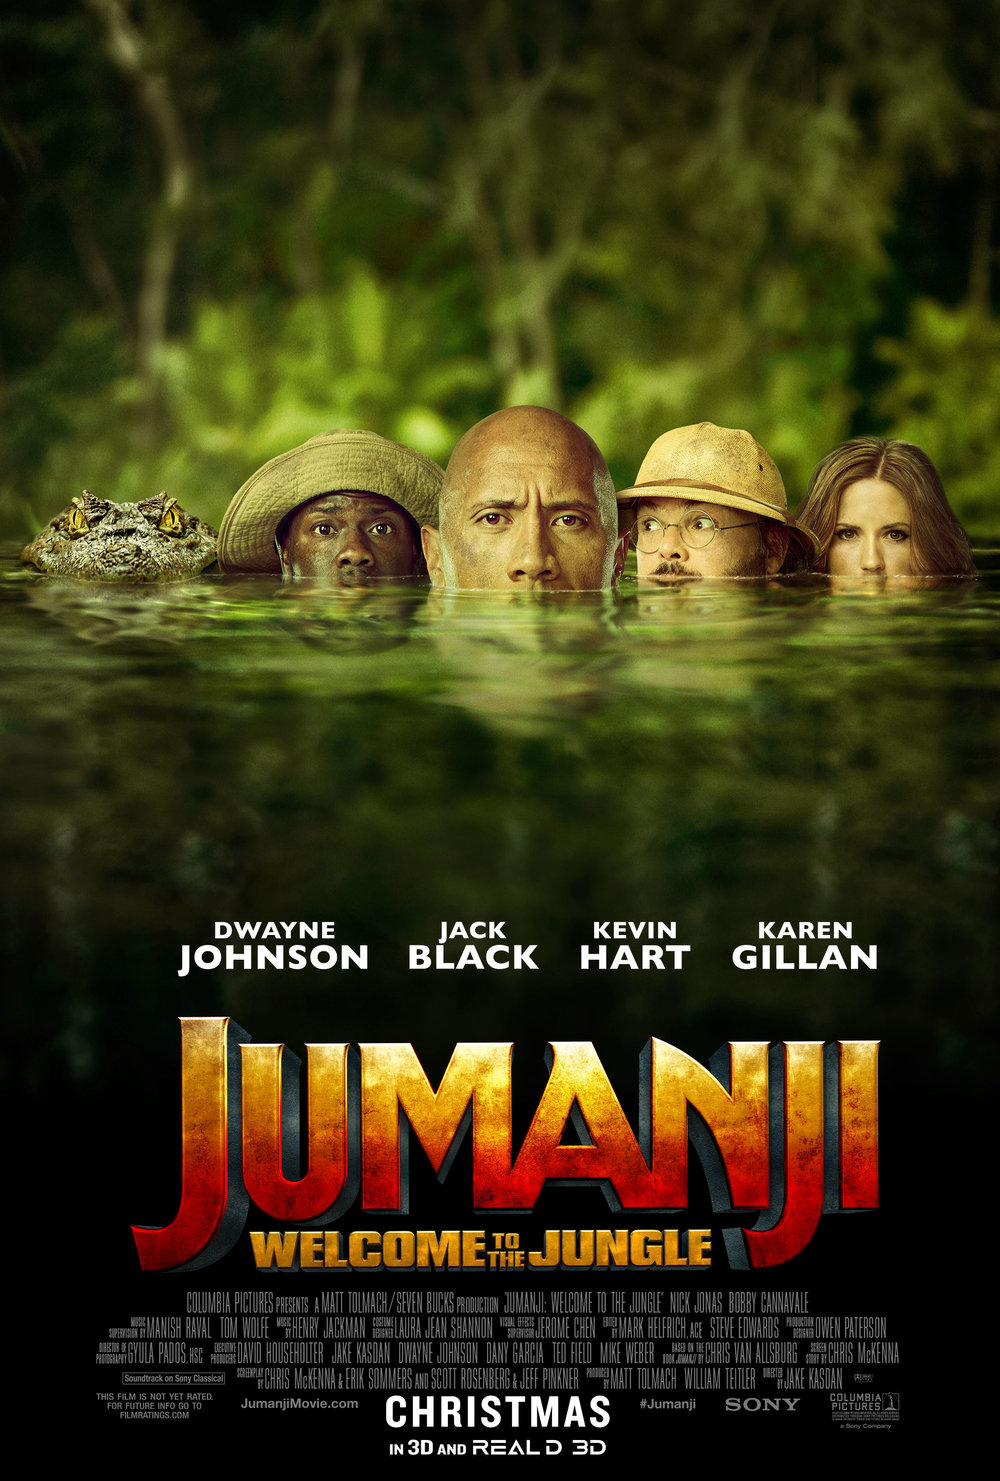 Jumanji Movie Poster.jpg